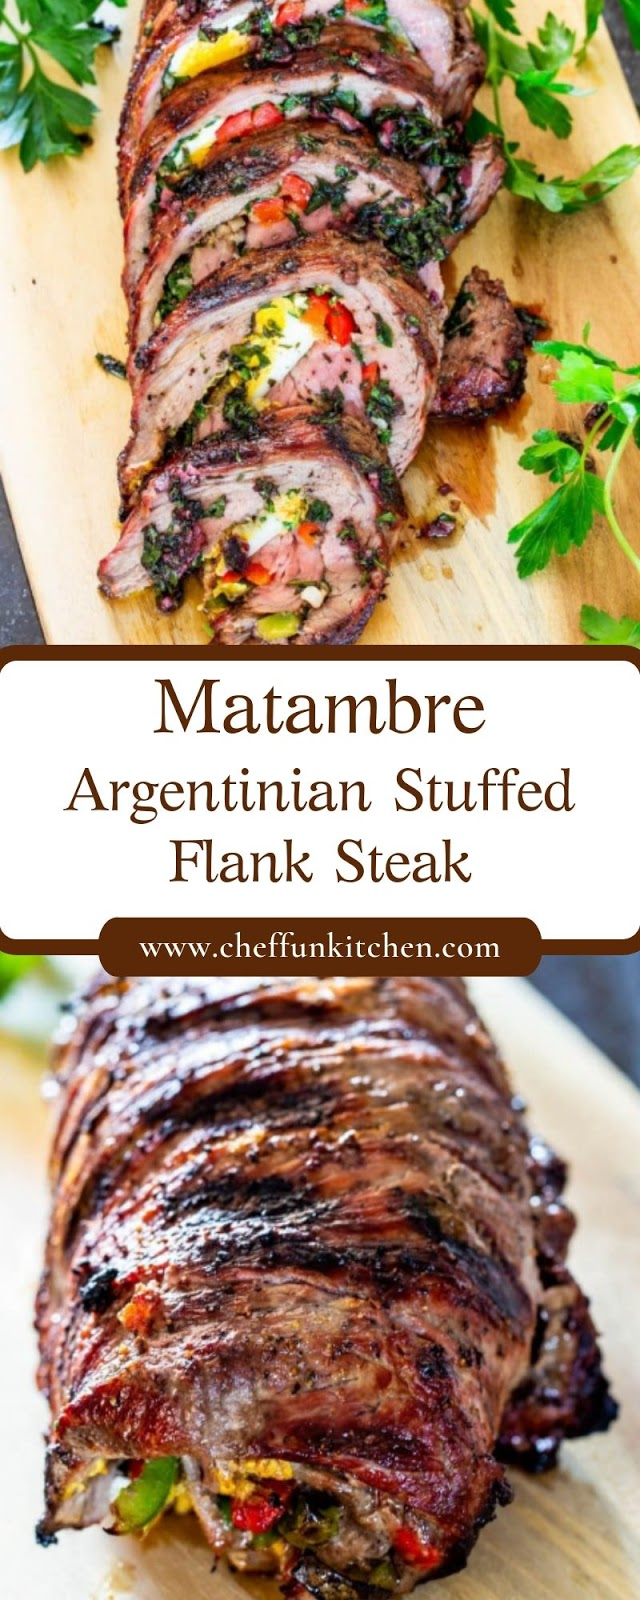 Matambre – Argentinian Stuffed Flank Steak